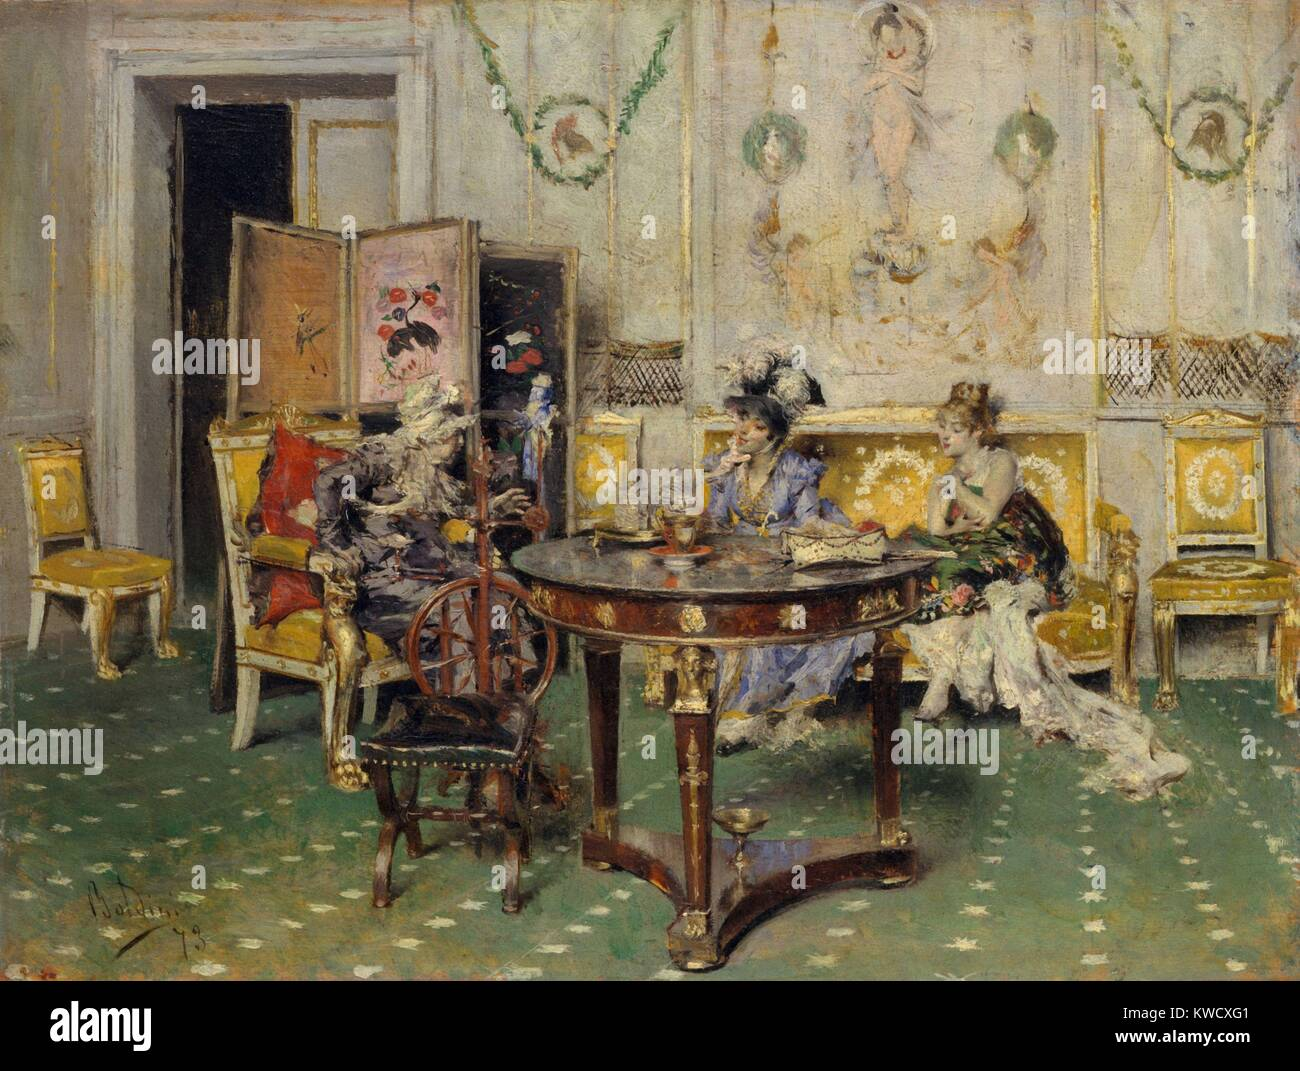 Gossip, by Giovanni Boldini, 1873, Italian, impressionistic painting, oil on wood. The light bright colors and brushwork - Stock Image